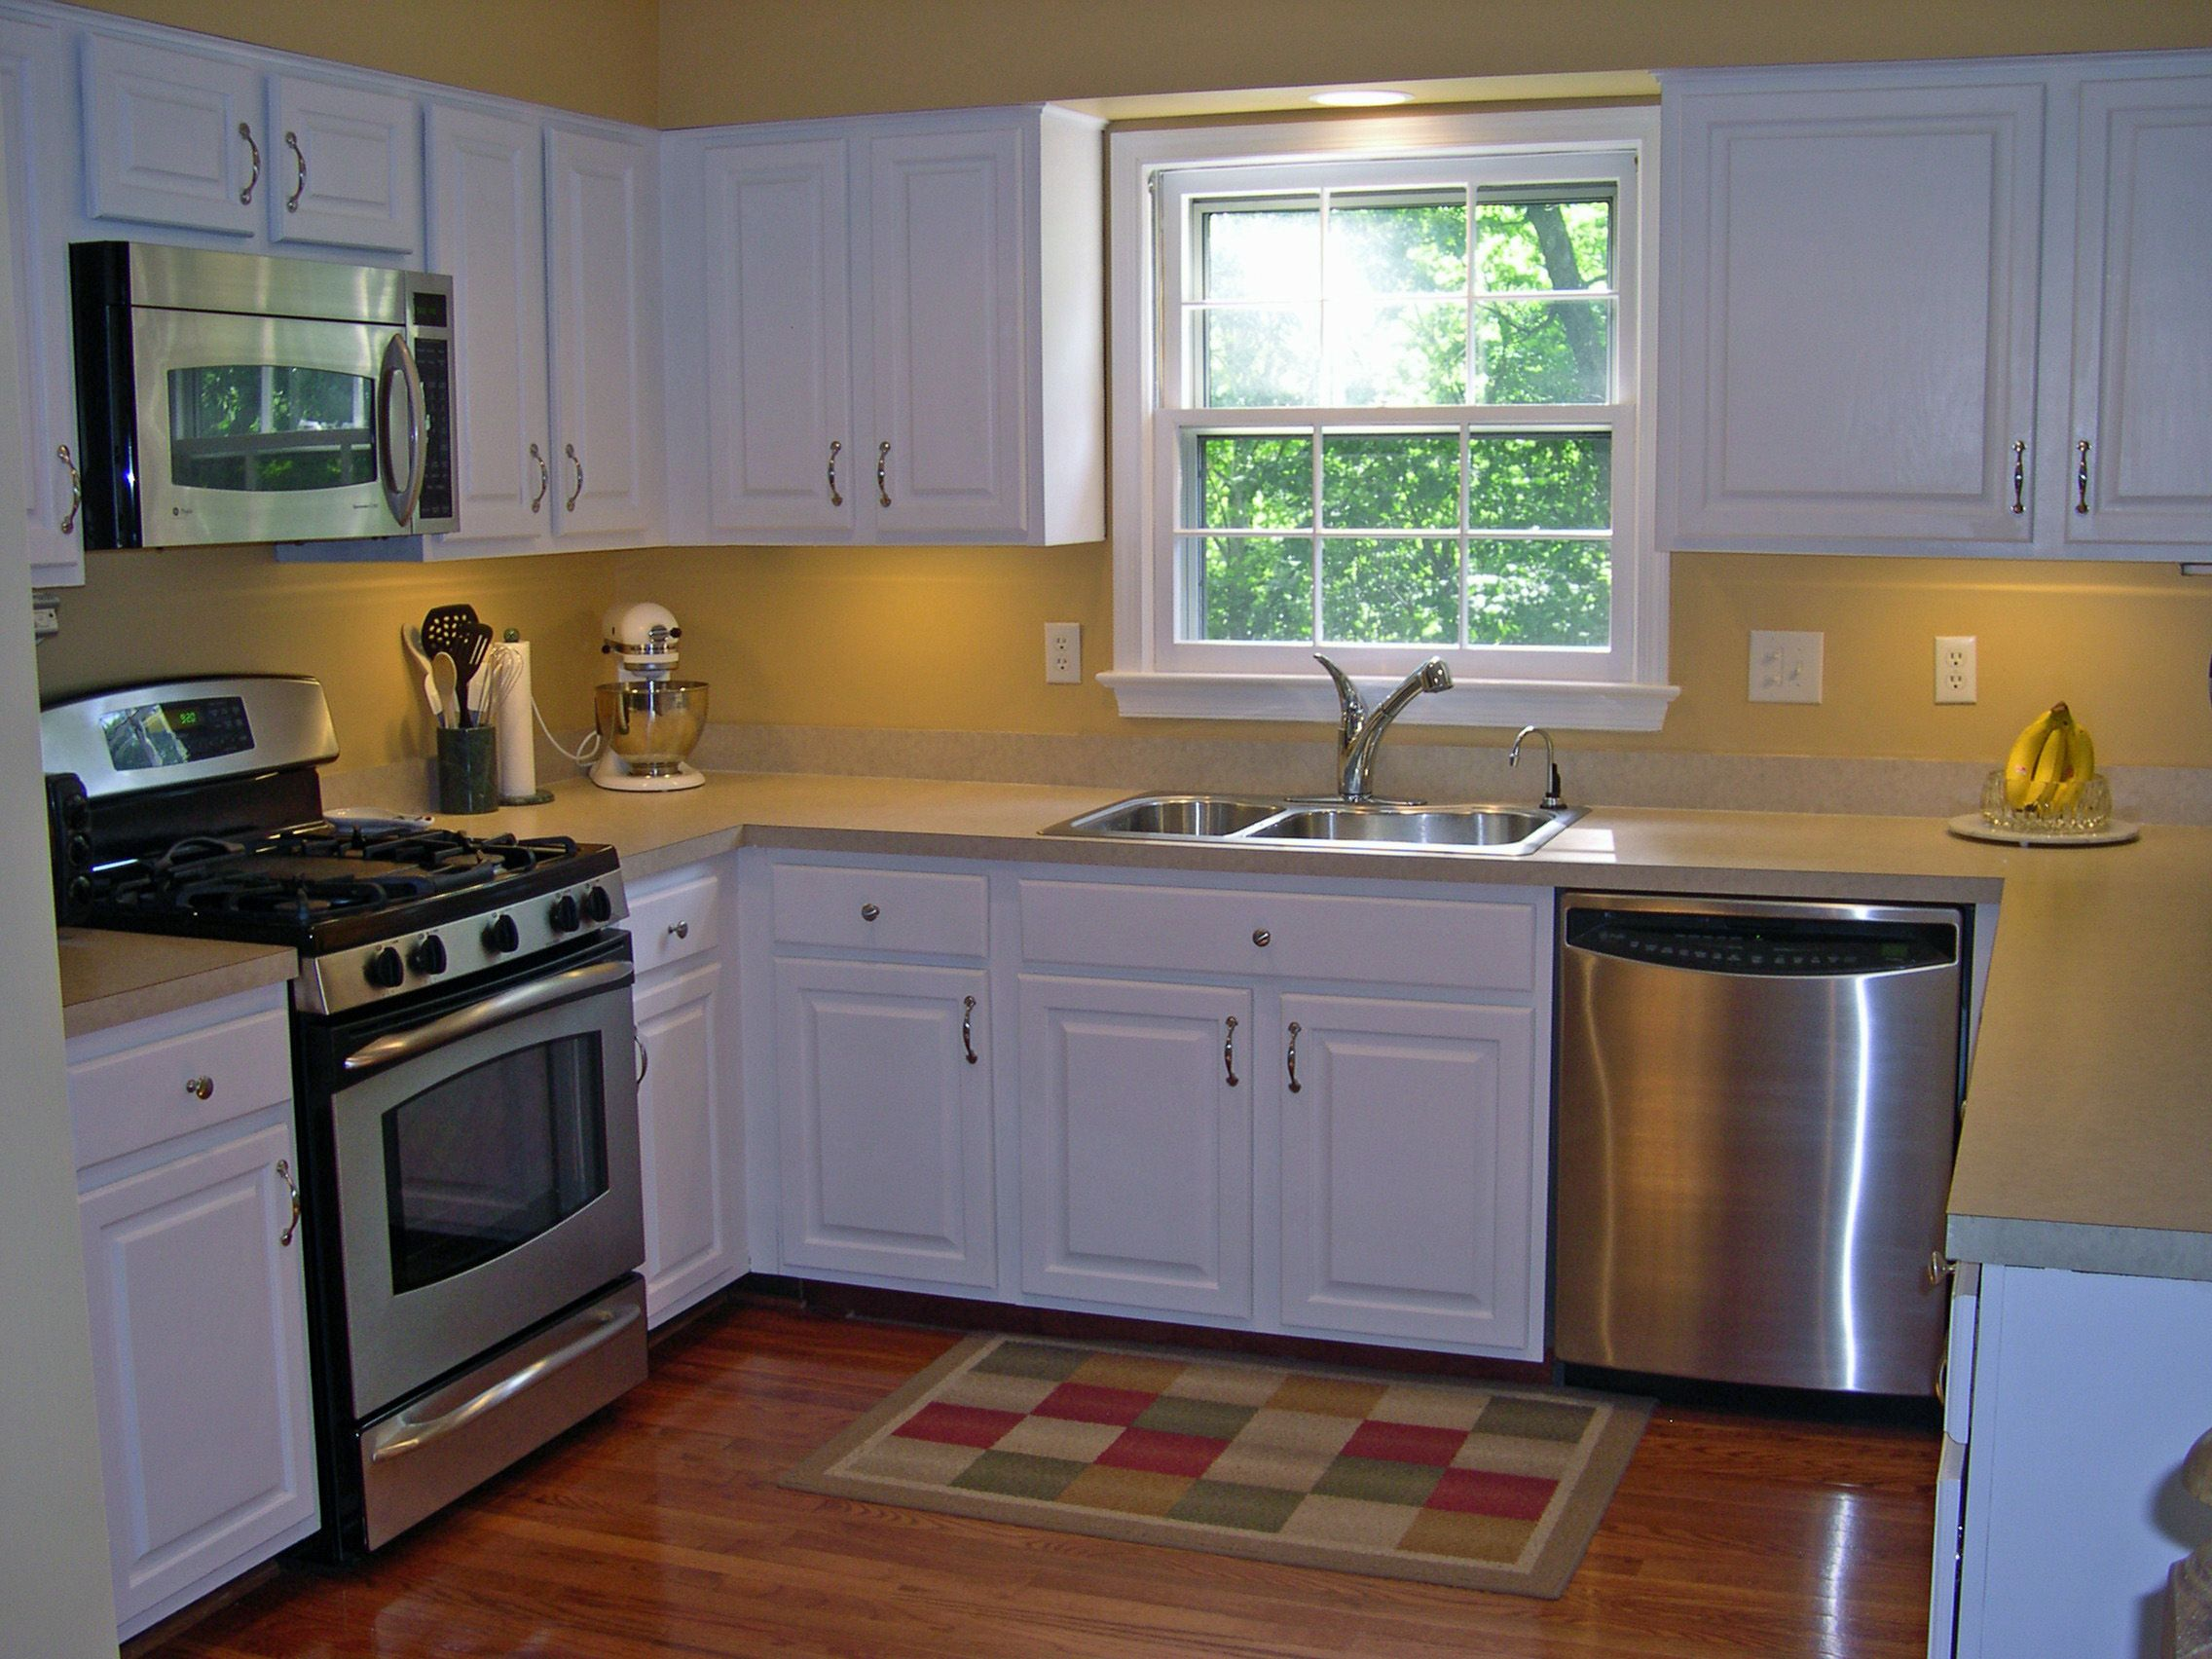 Small Apartment Kitchen Remodel Small Kitchen Remodeling Ideas  Small Kitchen Remodel Ideas